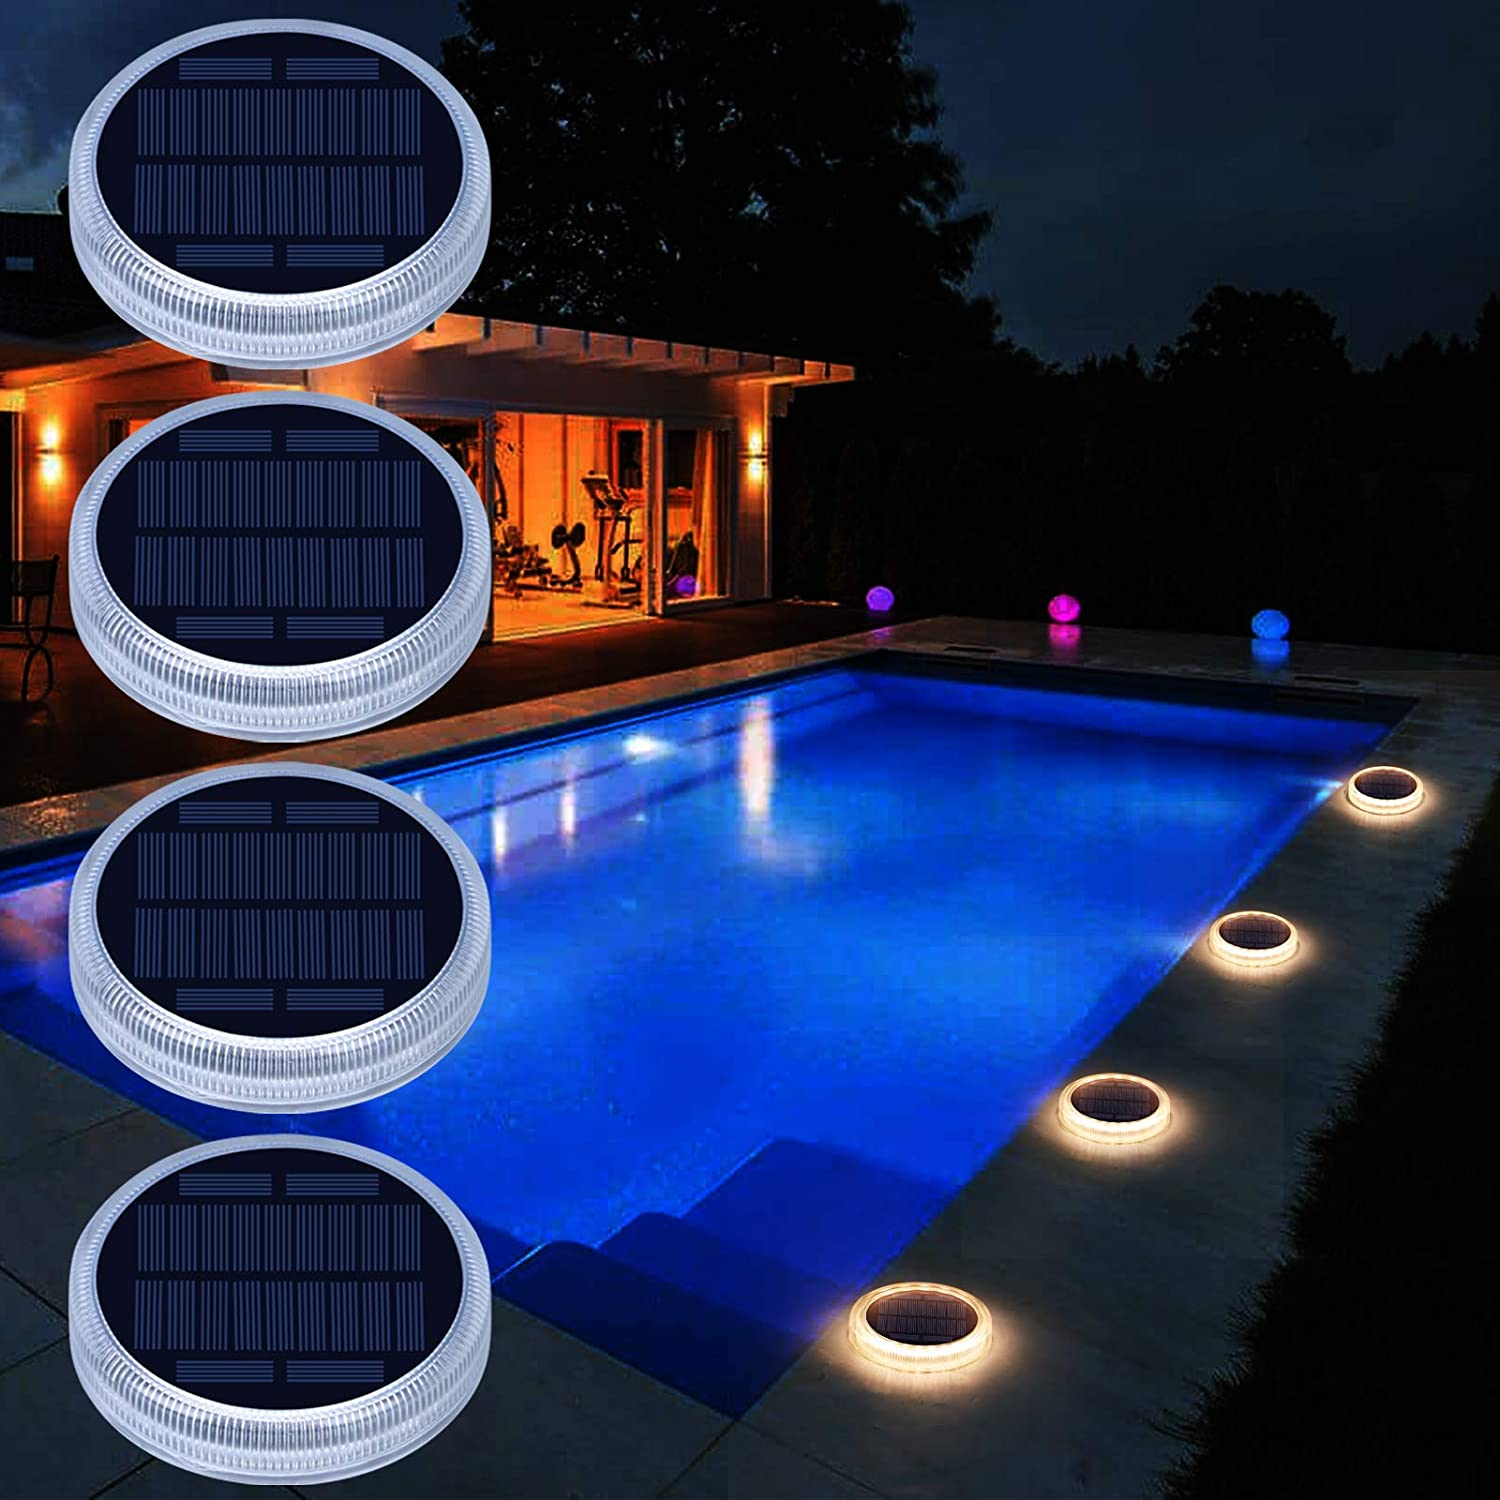 Solar Deck Lights, Driveway Walkway Dock Light Solar Powered Outdoor Waterproof Stair Step Pathway Ground LED Lamp for Backyard Patio Garden, auto On/Off - Warm White - 4 Pack